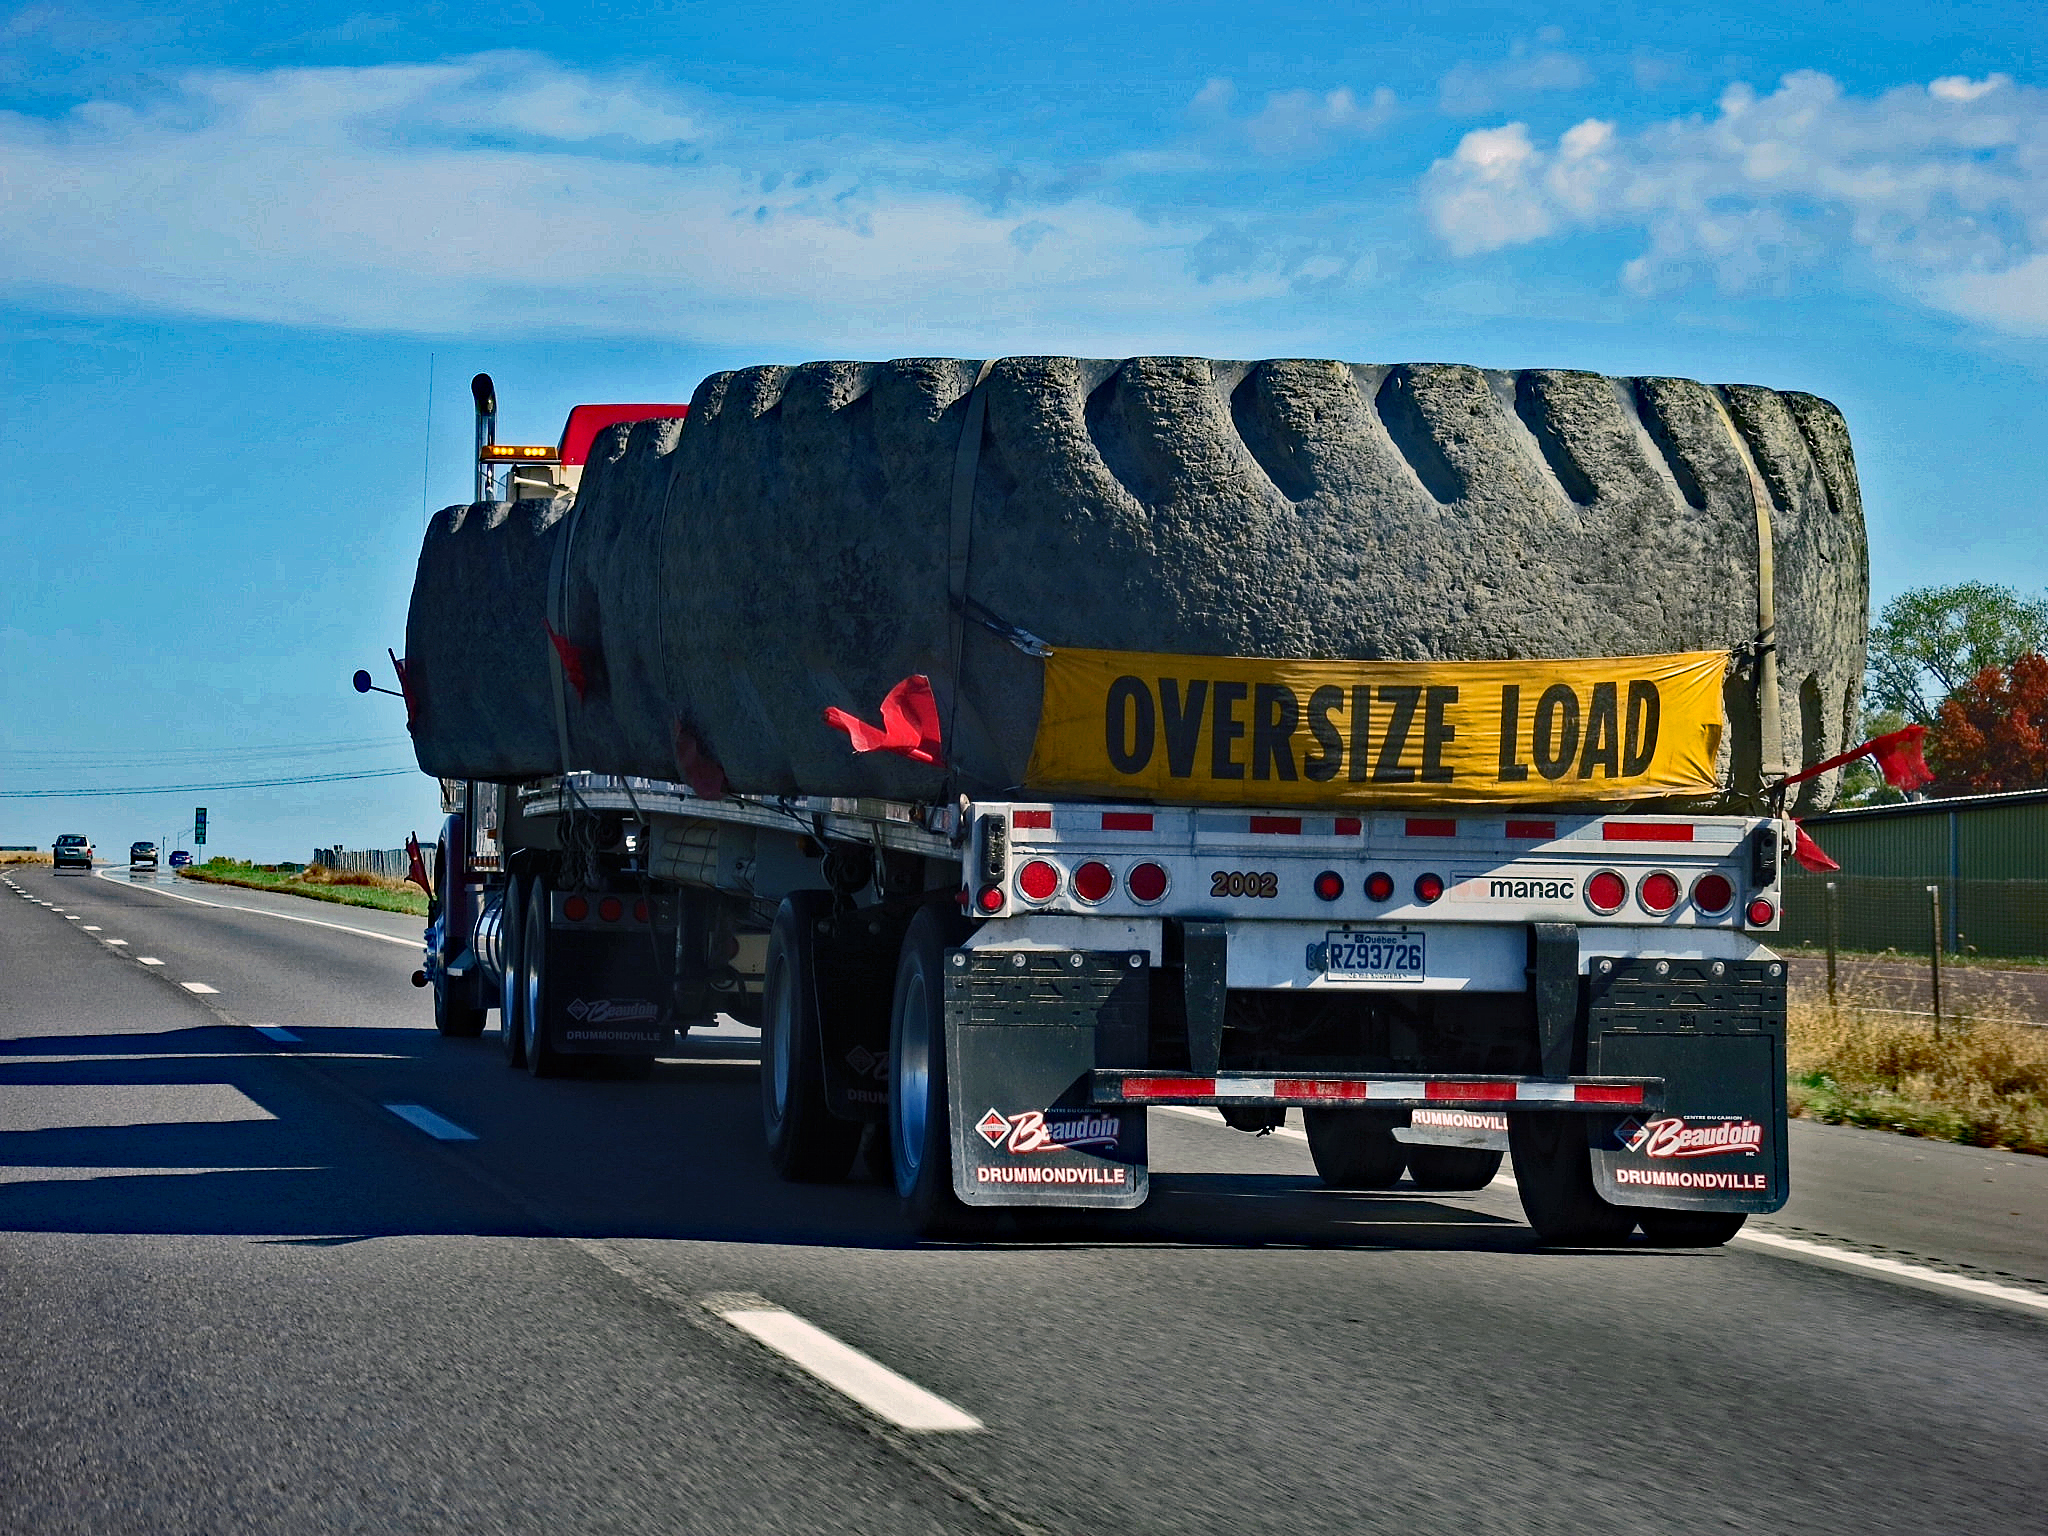 Hauling Wide Loads and Oversize Loads: Important Questions to Consider